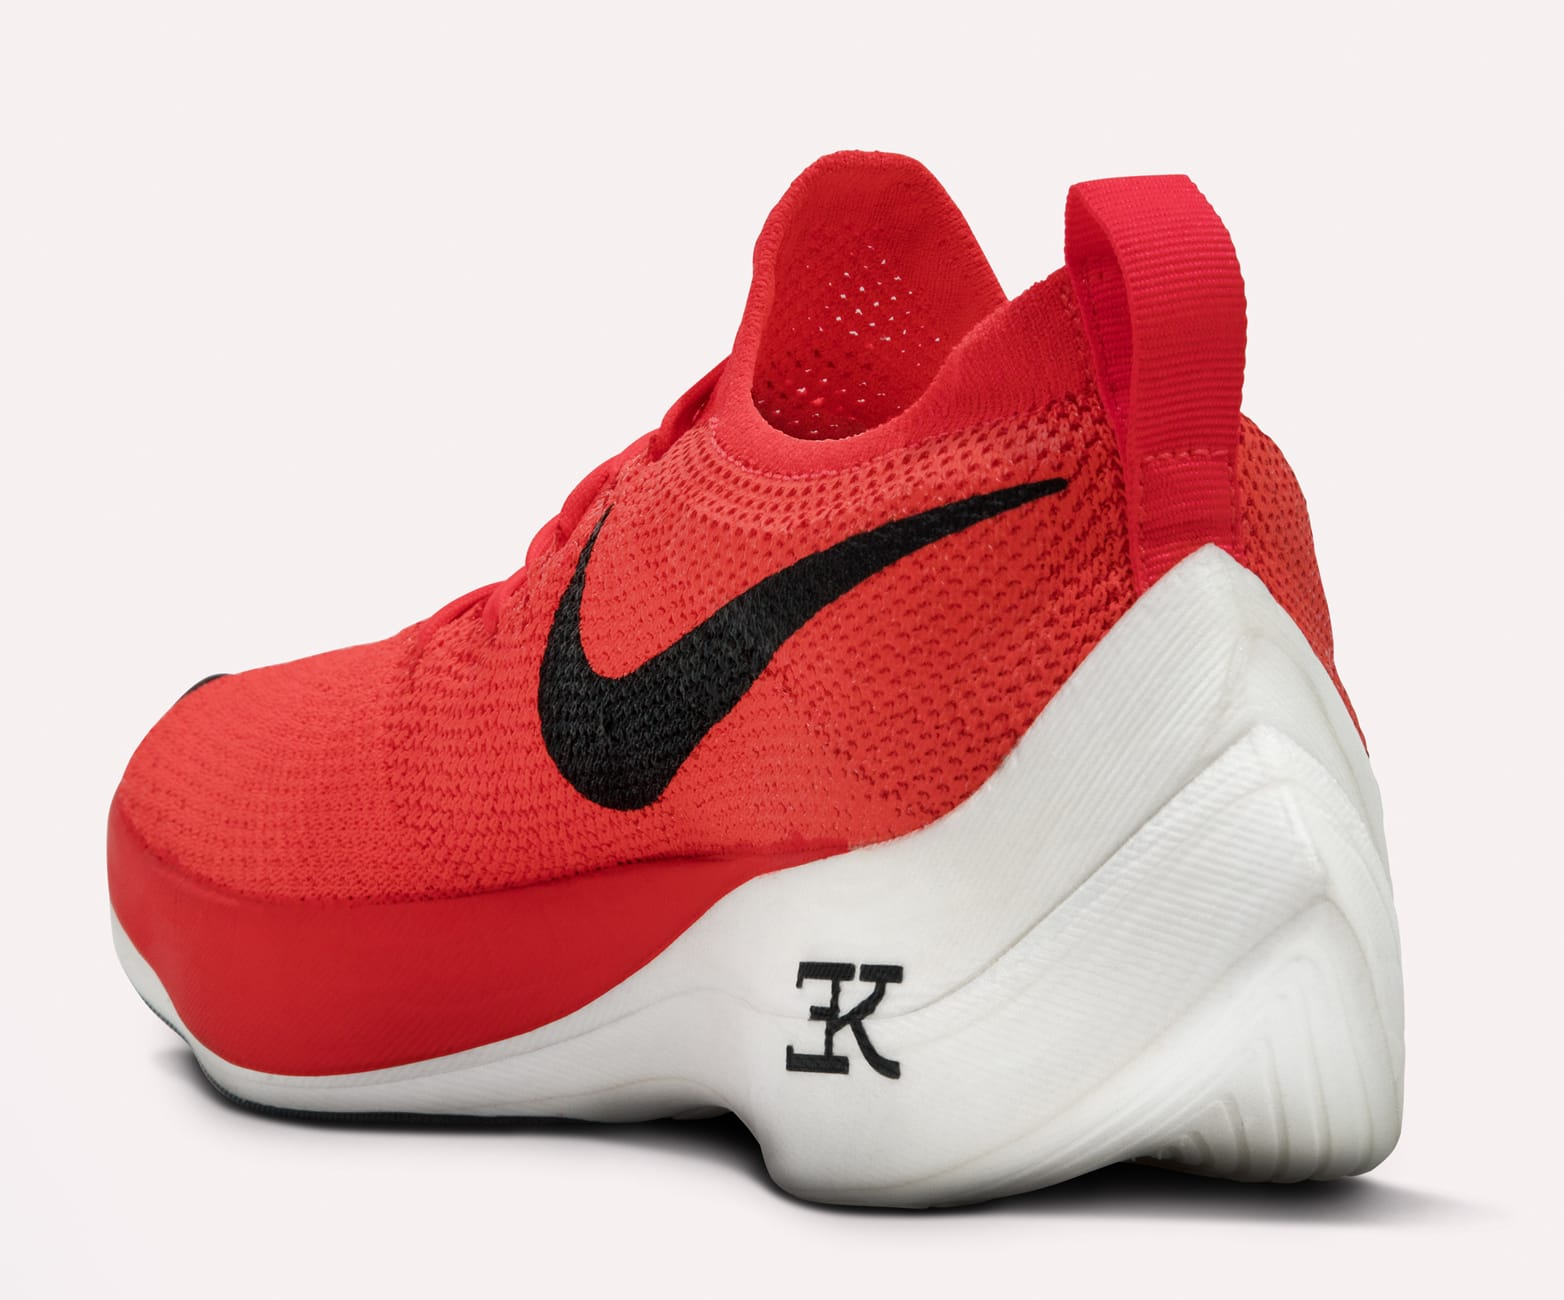 official photos 9bbdc 66ce2 ... australia image via nike news nike zoom vaporfly elite heel 31e7e 10ad7